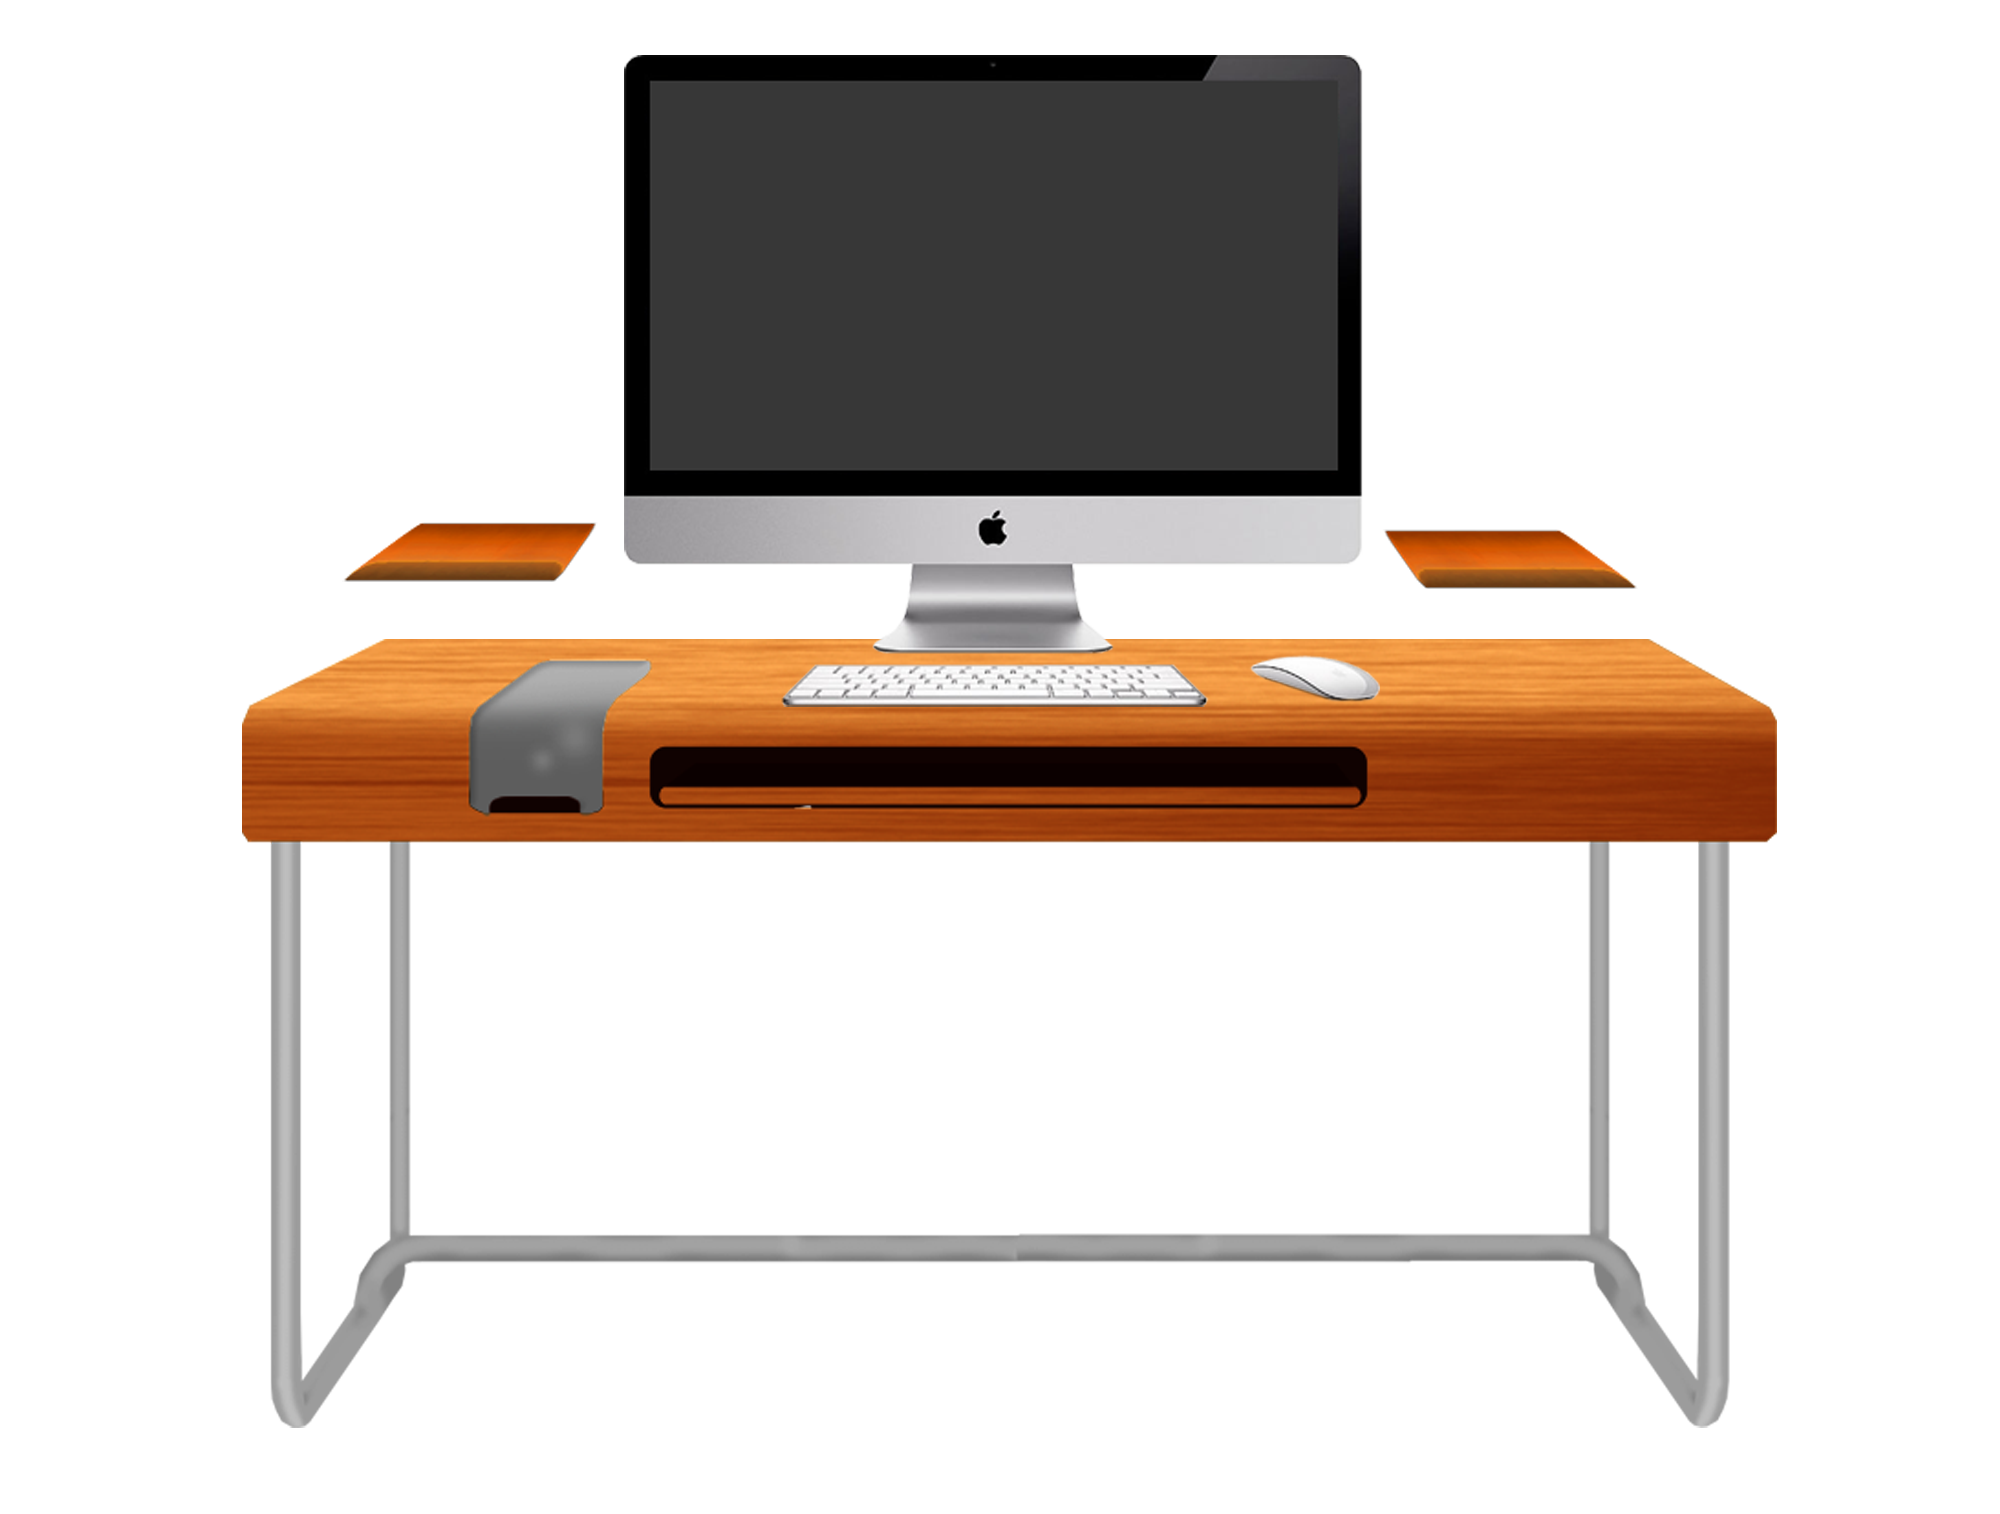 Modern Orange Computer Desk Design With Black Keyboard And White ...